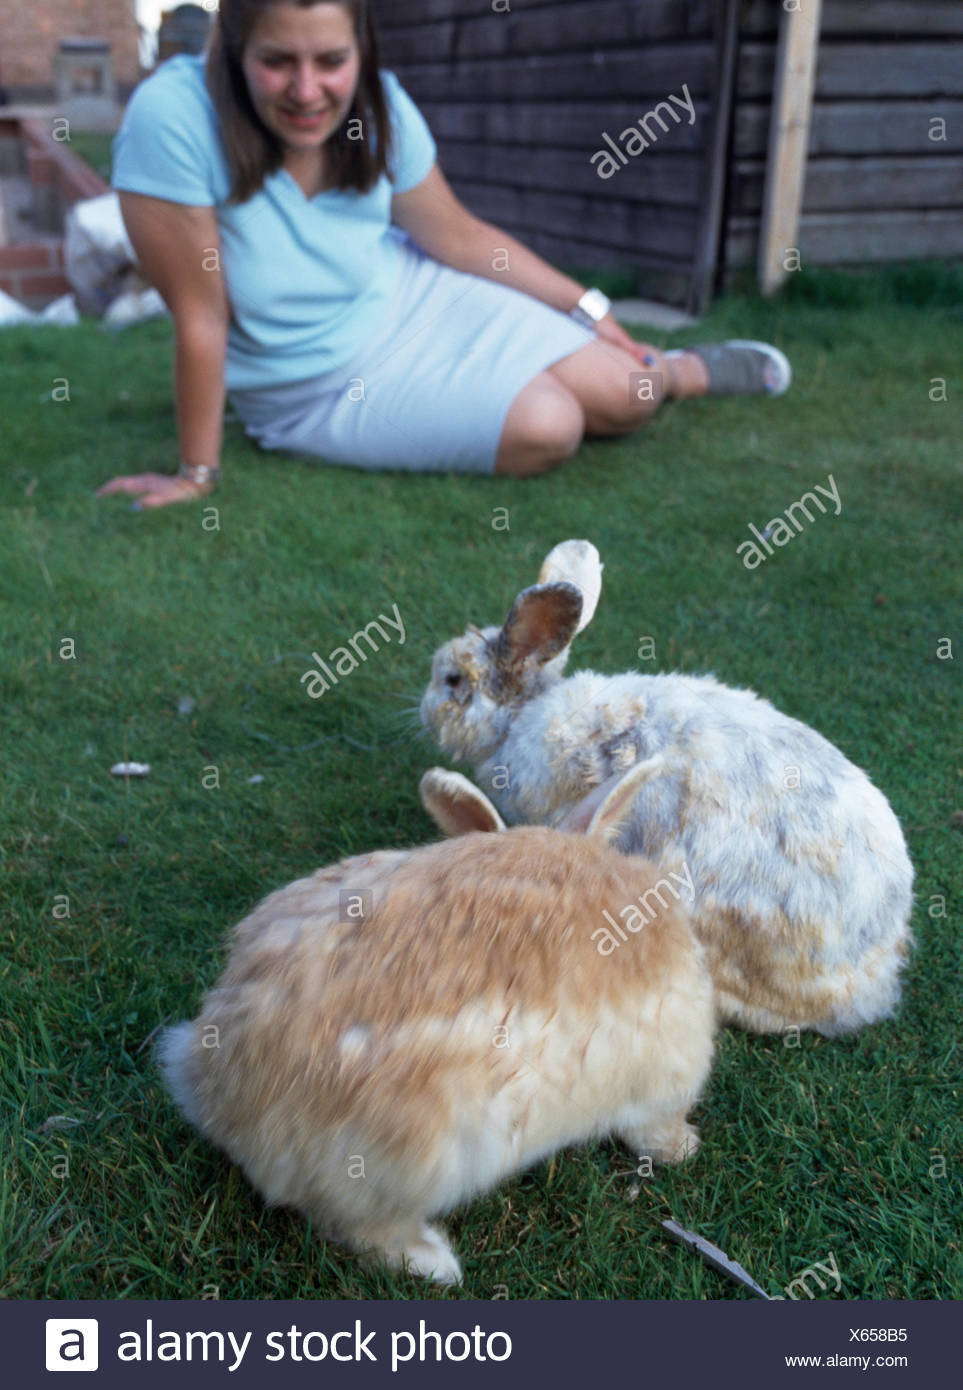 Two large pet rabbits on lawn with a young girl in the background         FOR EDITORIAL USE ONLY - Stock Image